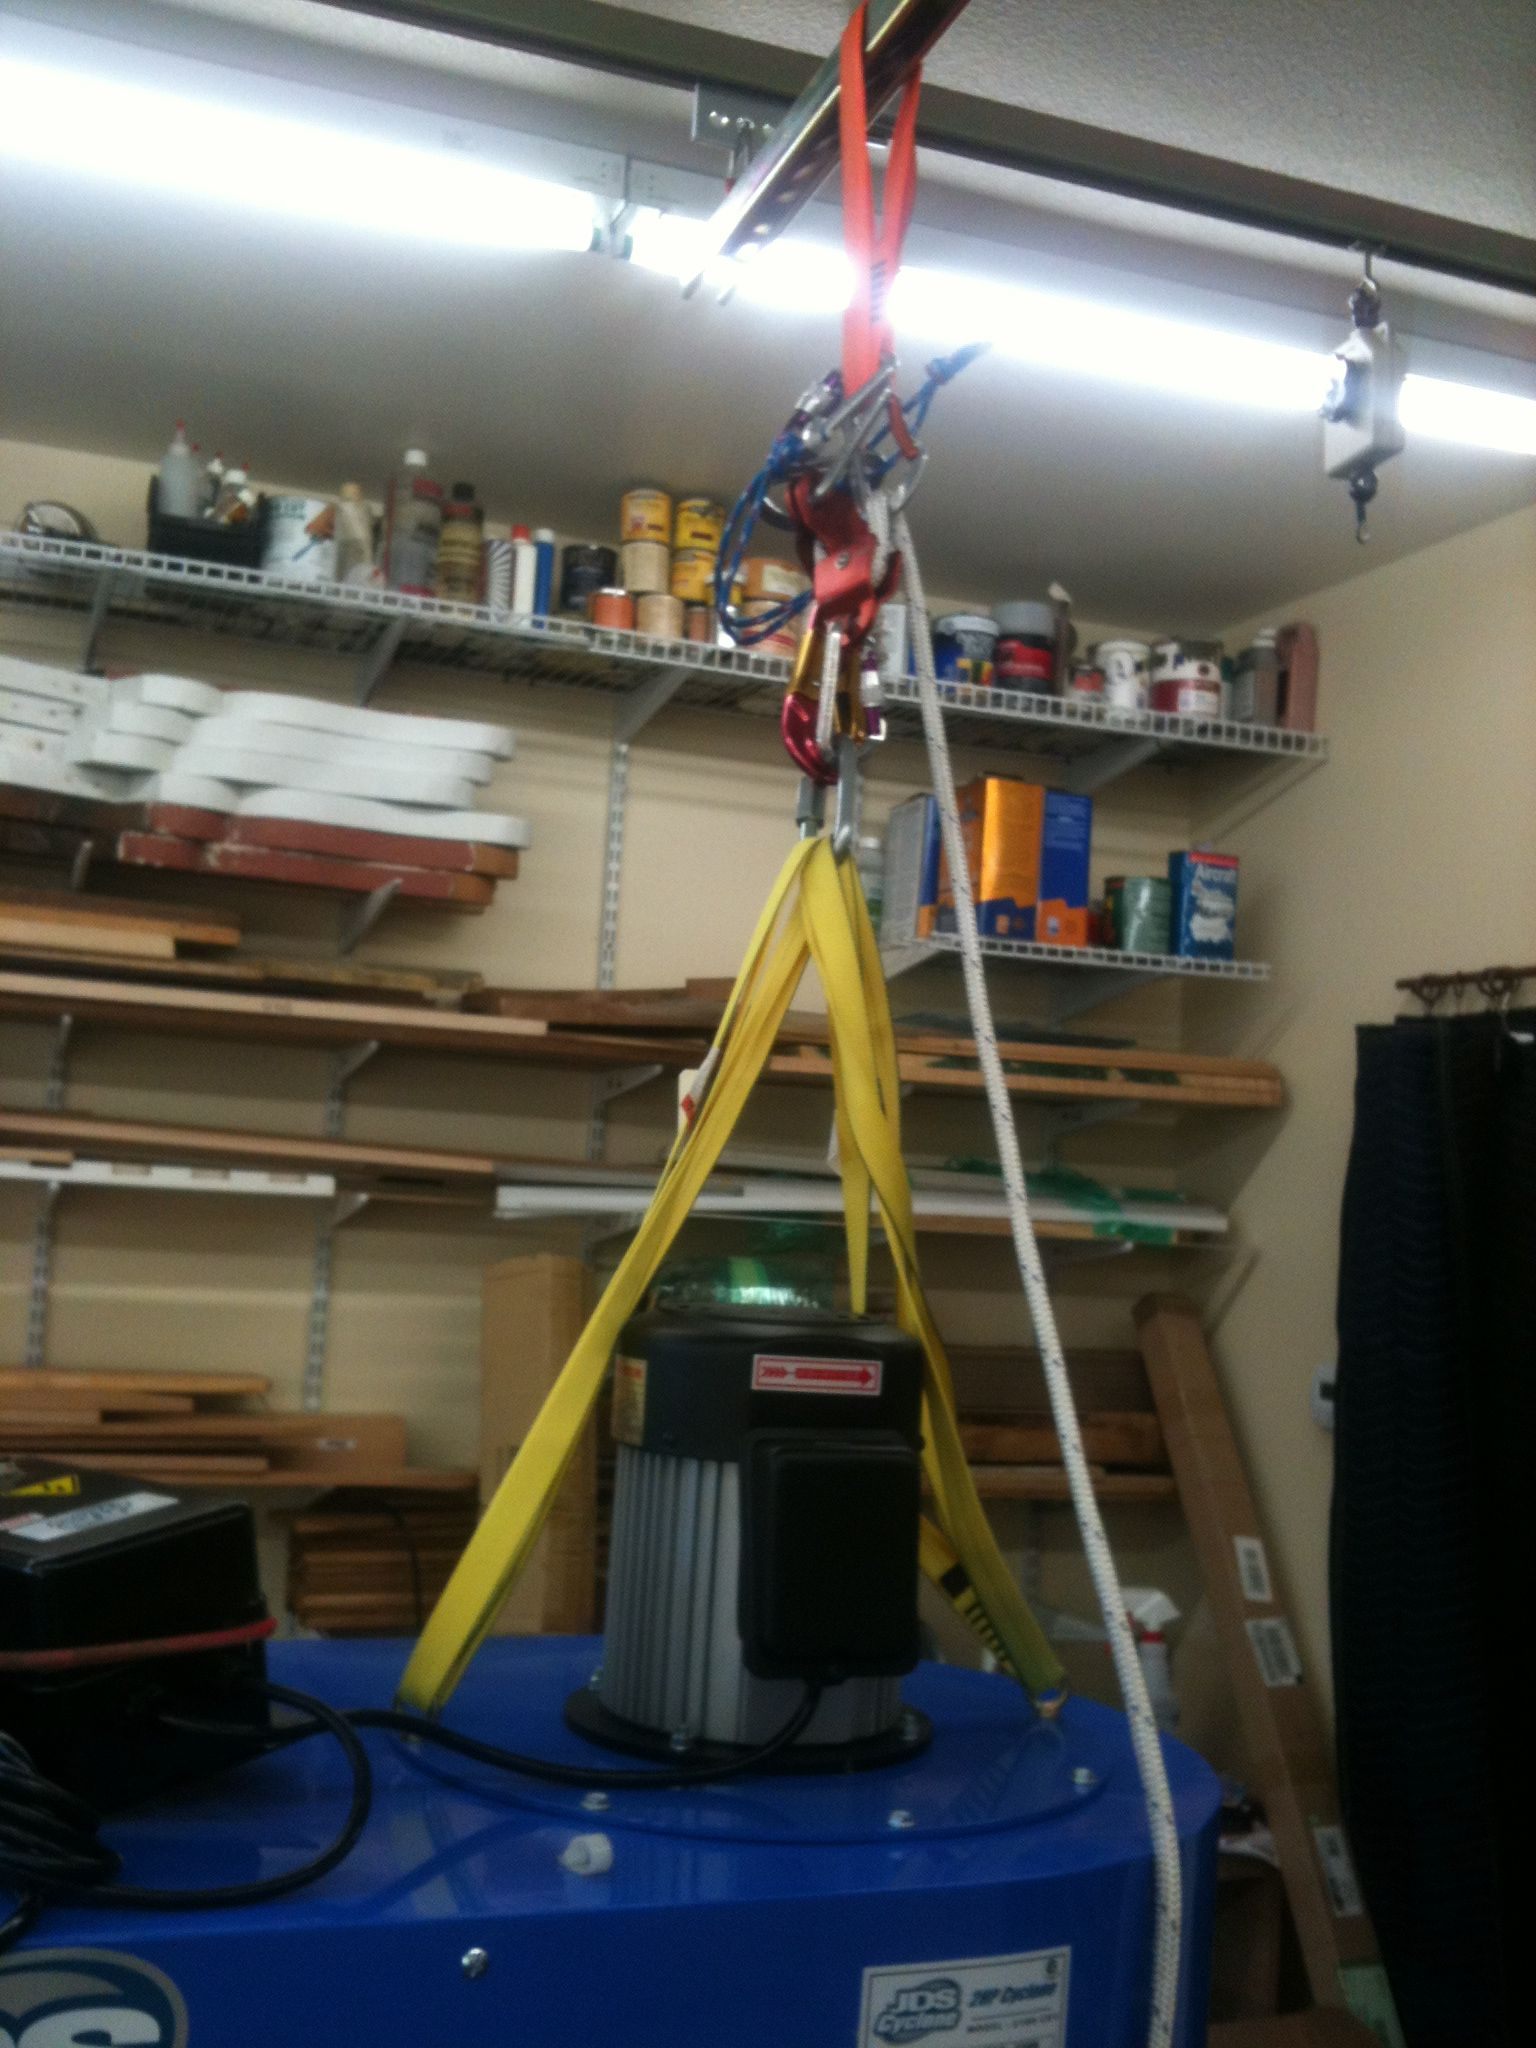 Unistrut Trolley System In My Shop. Being Used Here To Hoist Parts Of My  Dust Collector During Assembly. | Tools U0026 Shops | Pinterest | Dust  Collector, ...